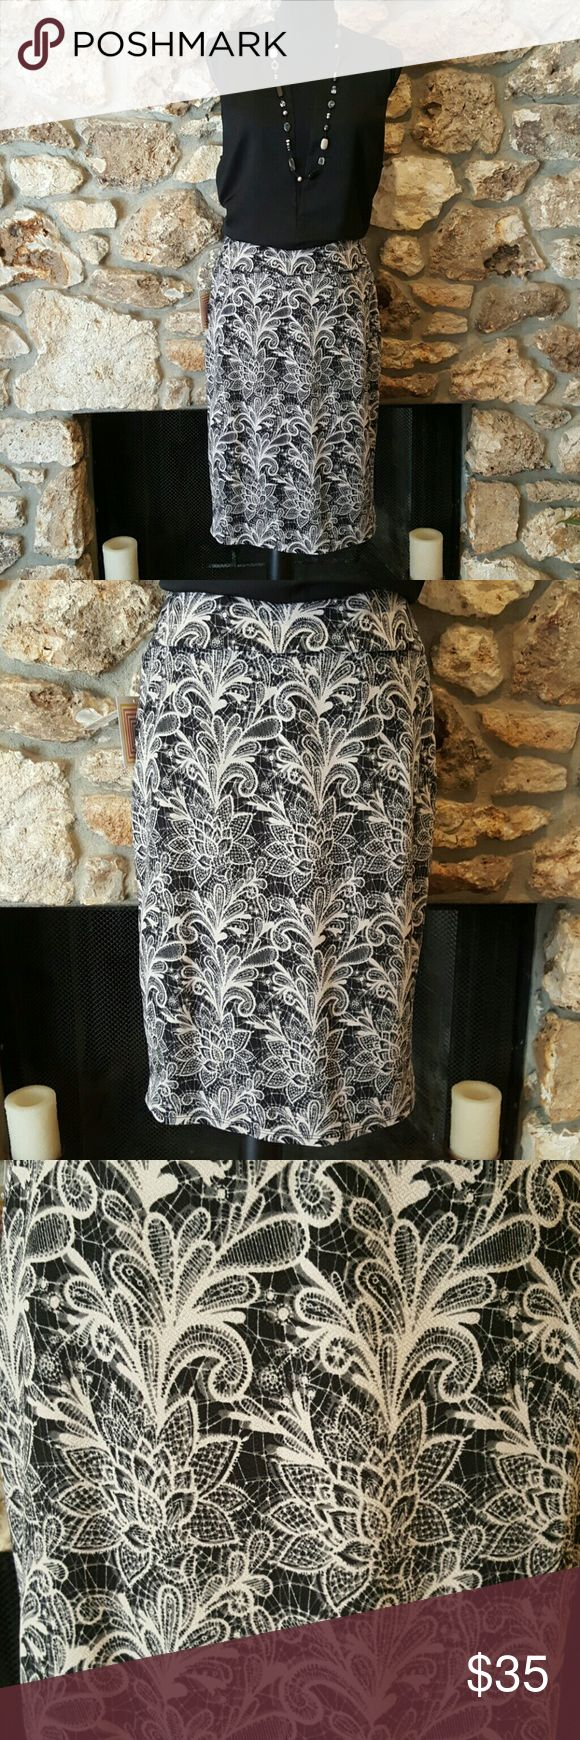 Large Lularoe Cassie Skirt - NWT Large Lularoe Cassie Skirt.  Gorgeous black with cream lotus flower print. Never worn, new with tags. Price is firm unless bundled. LuLaRoe Skirts Pencil